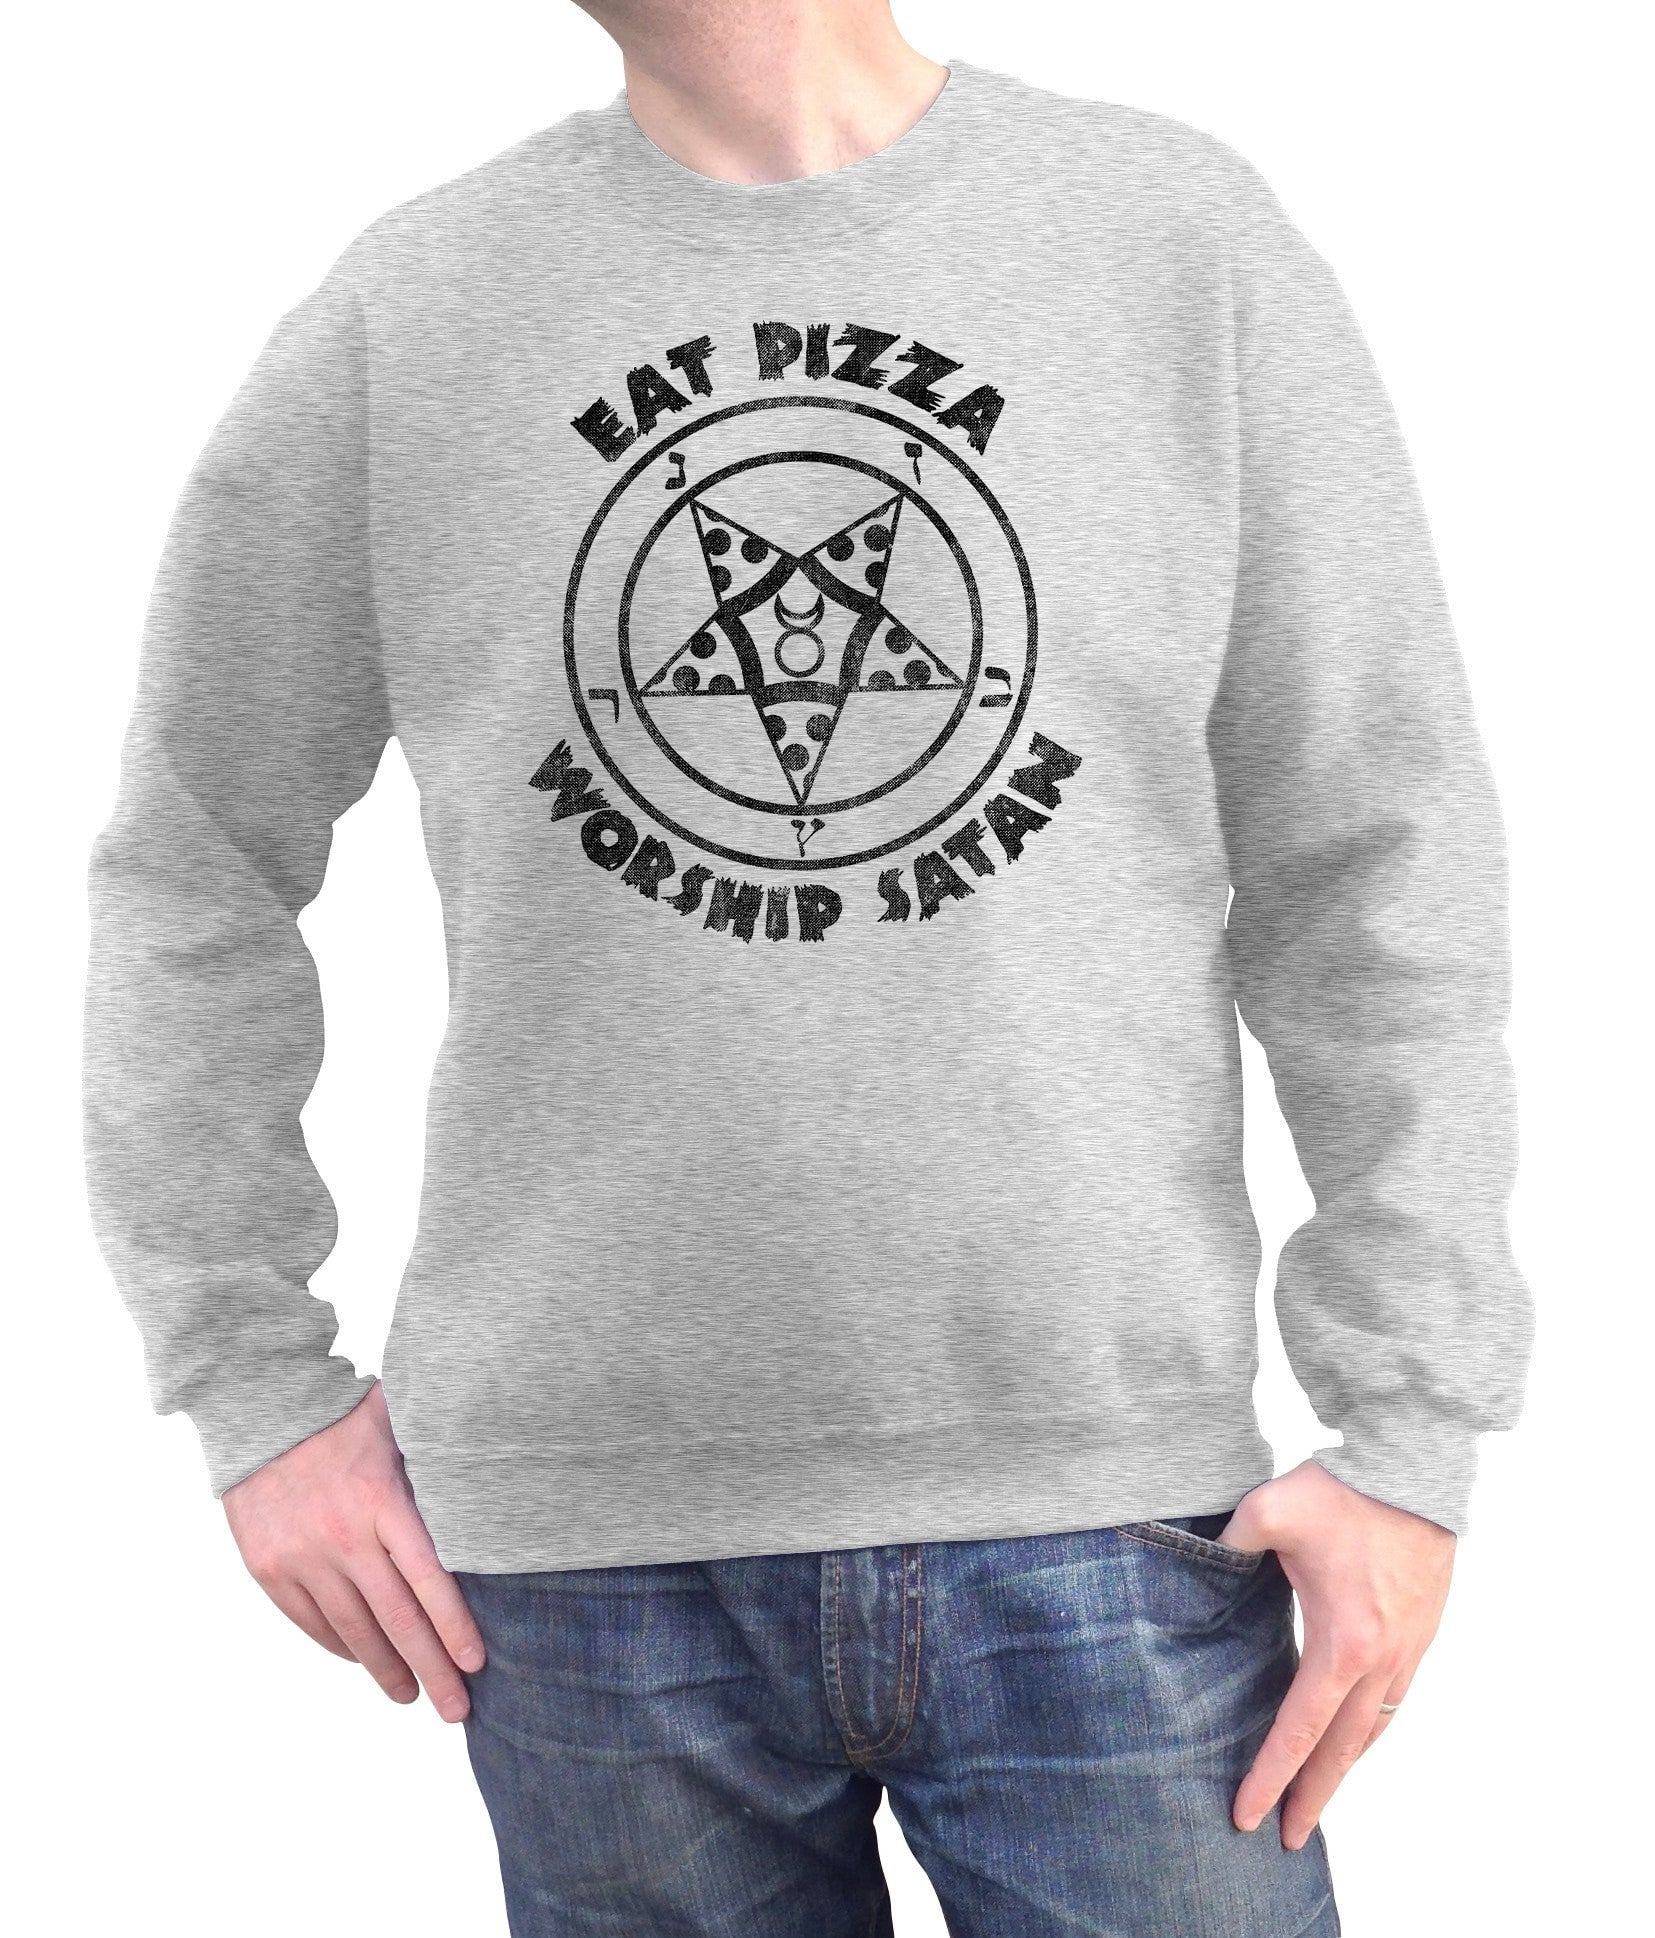 Unisex Eat Pizza Worship Satan Sweatshirt